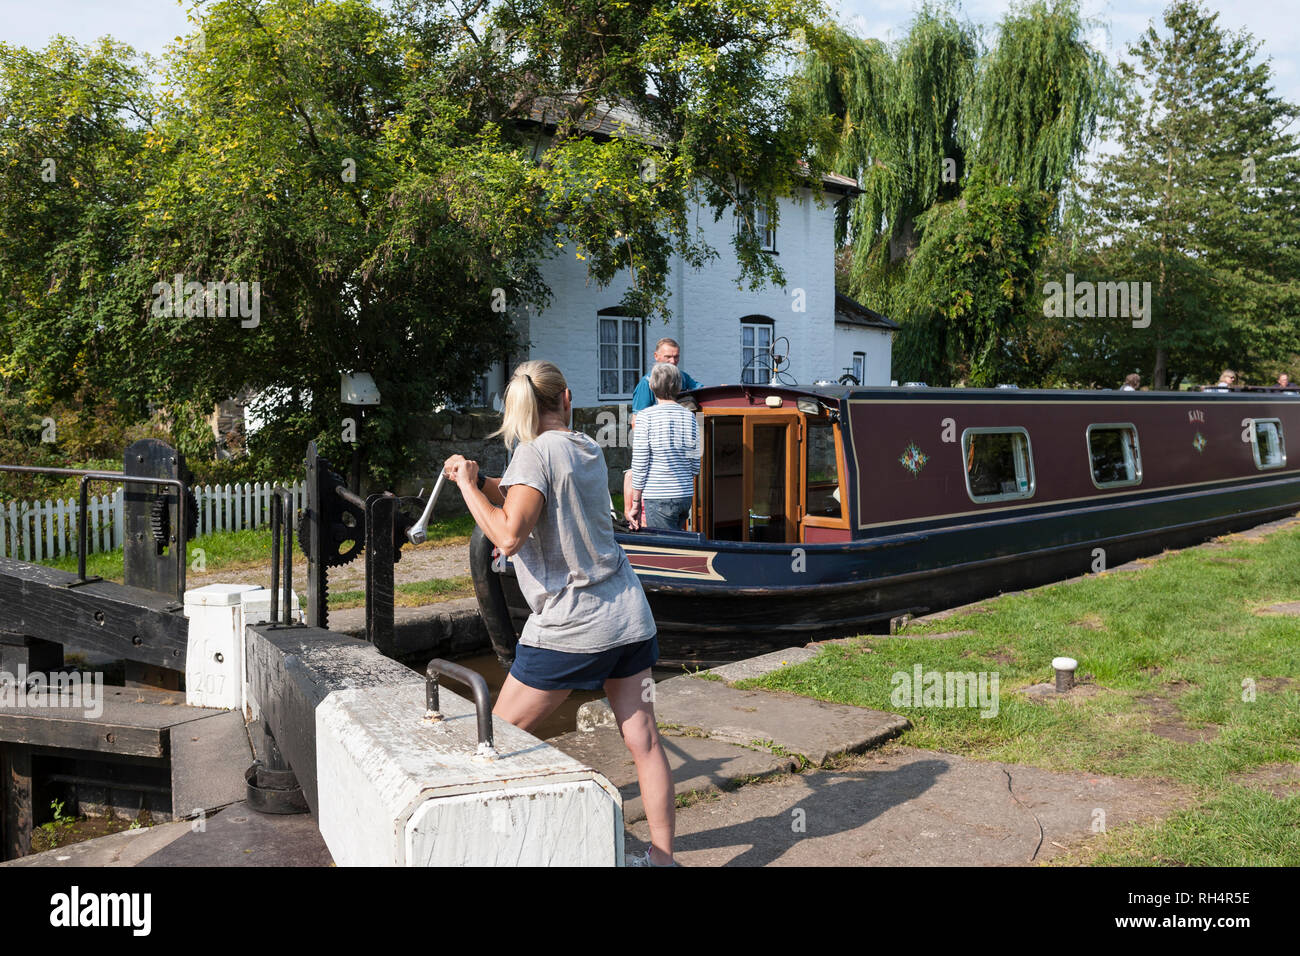 A girl operates the windlass for the ground paddles on New Marton Top Lock No.2, Llangollen Canal, Shropshire, England - Stock Image